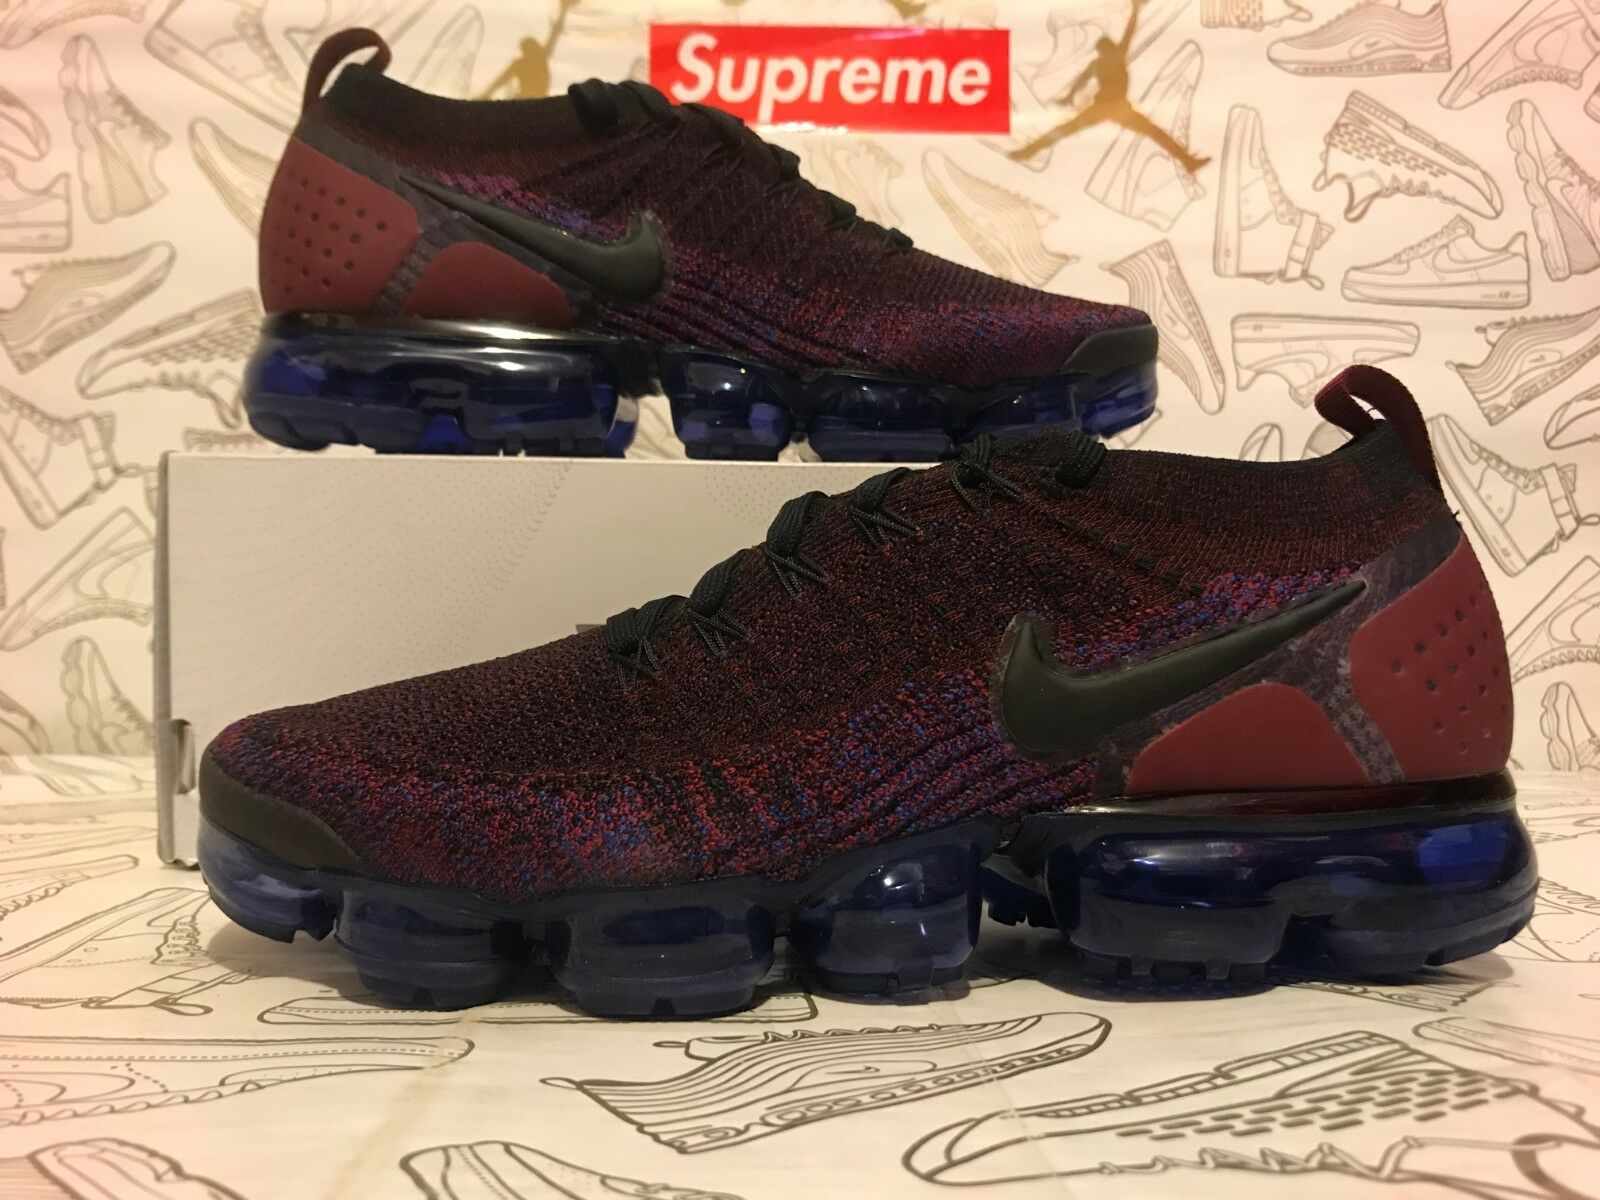 buy online 50a85 0e558 NIKE AIR VAPORMAX 2 BLACK RED RACER blueE 942842-006 Mens SZ 10.5 TEAM  FLYKNIT ntdwni2865-new shoes